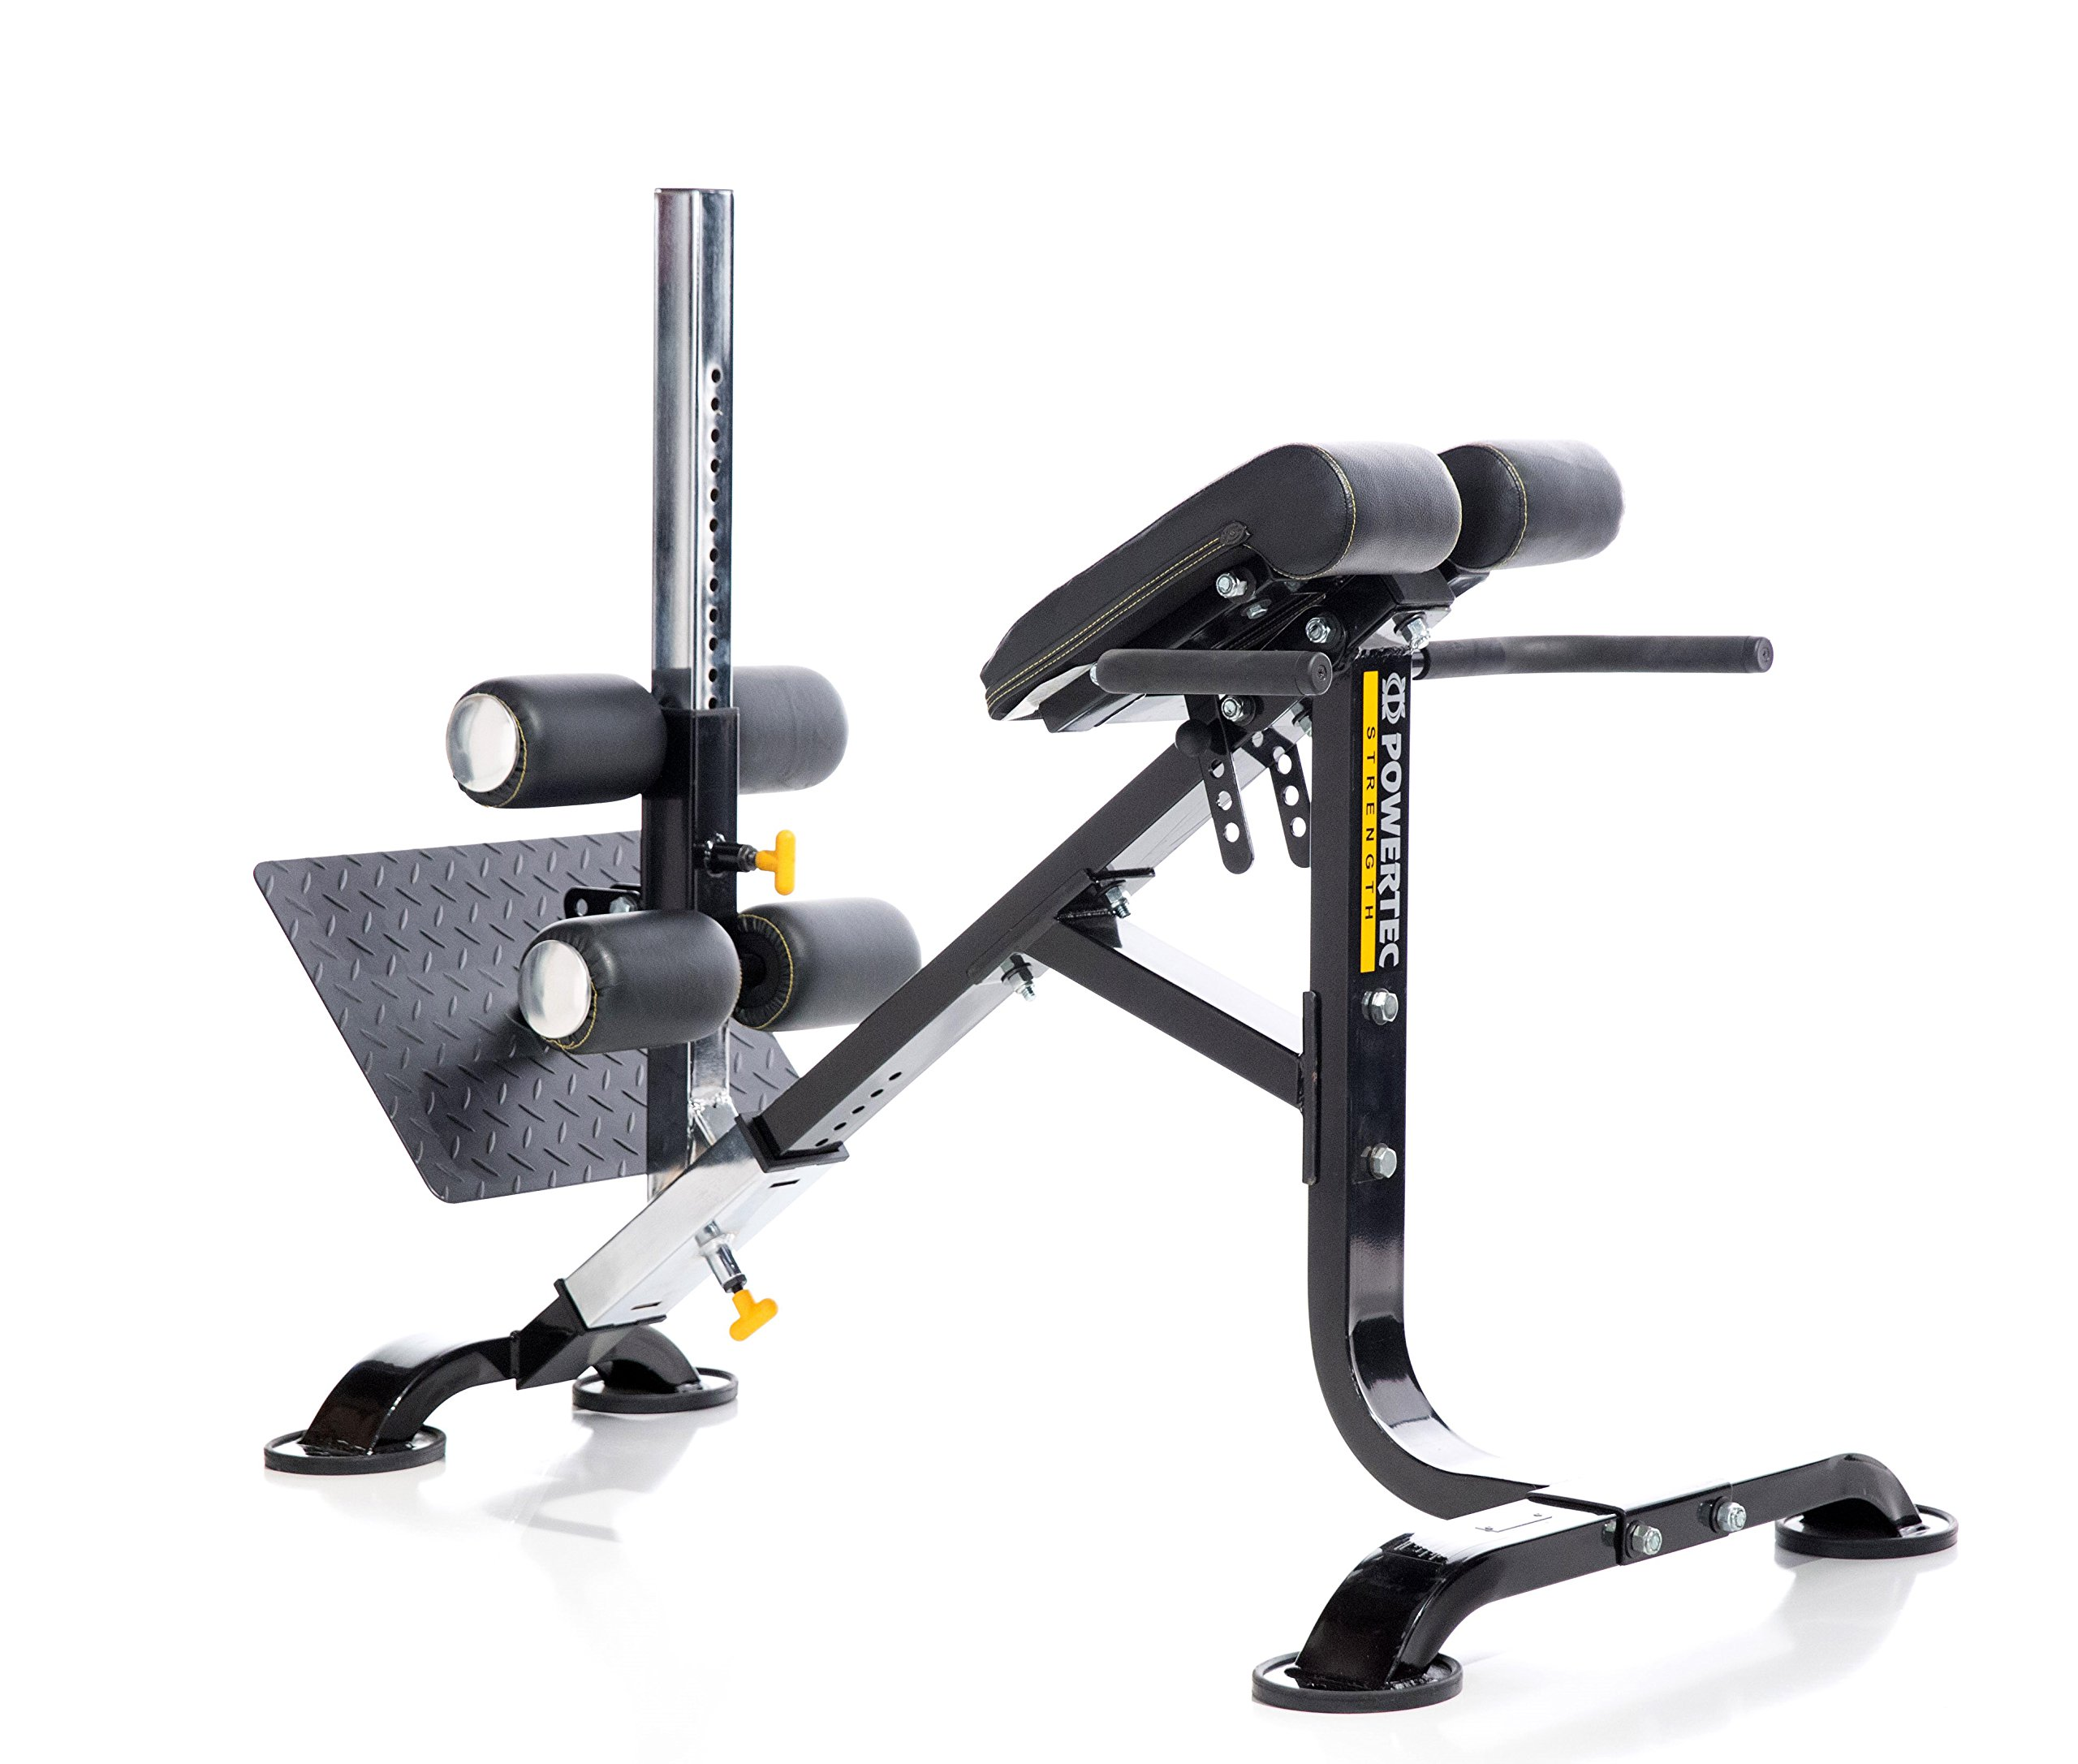 Powertec Fitness Dual Hyperextension/Crunch Powertec Dual Hyperextension/Crunch, Black